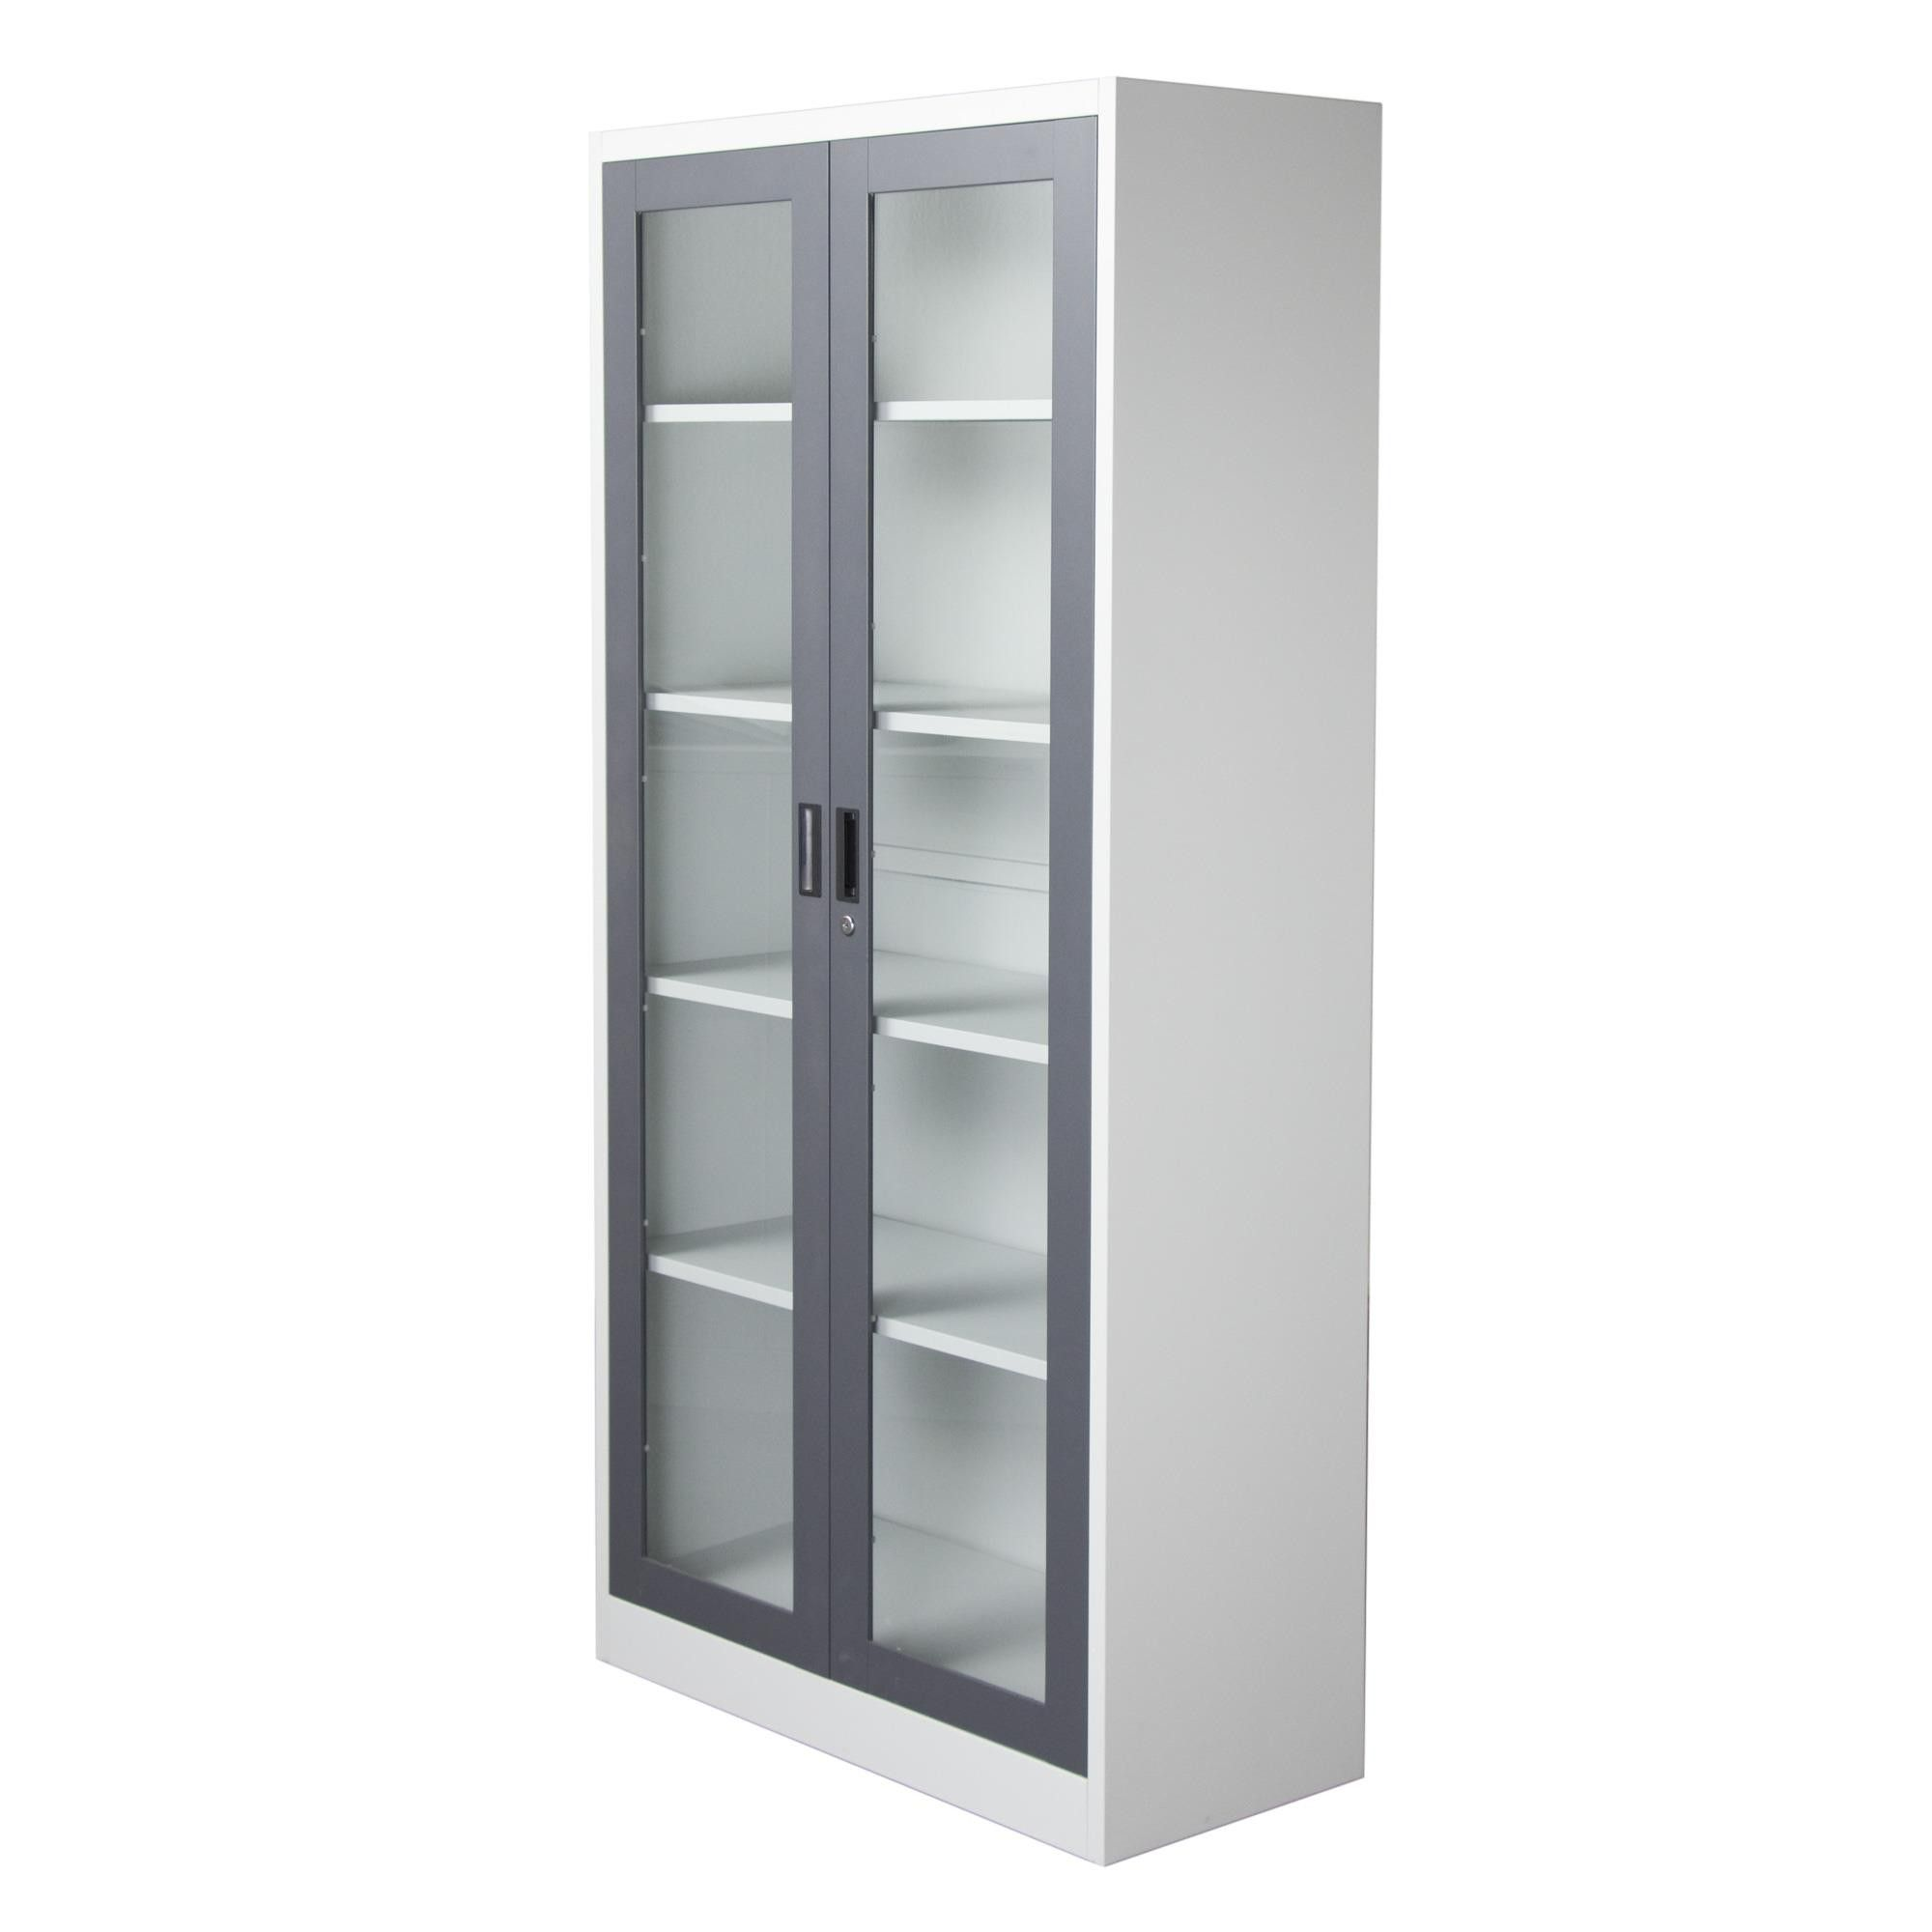 White Solid Wood Tall Narrow Bookcase With 4 Tier Shelves And Gray Steel  Frame Swing Glass